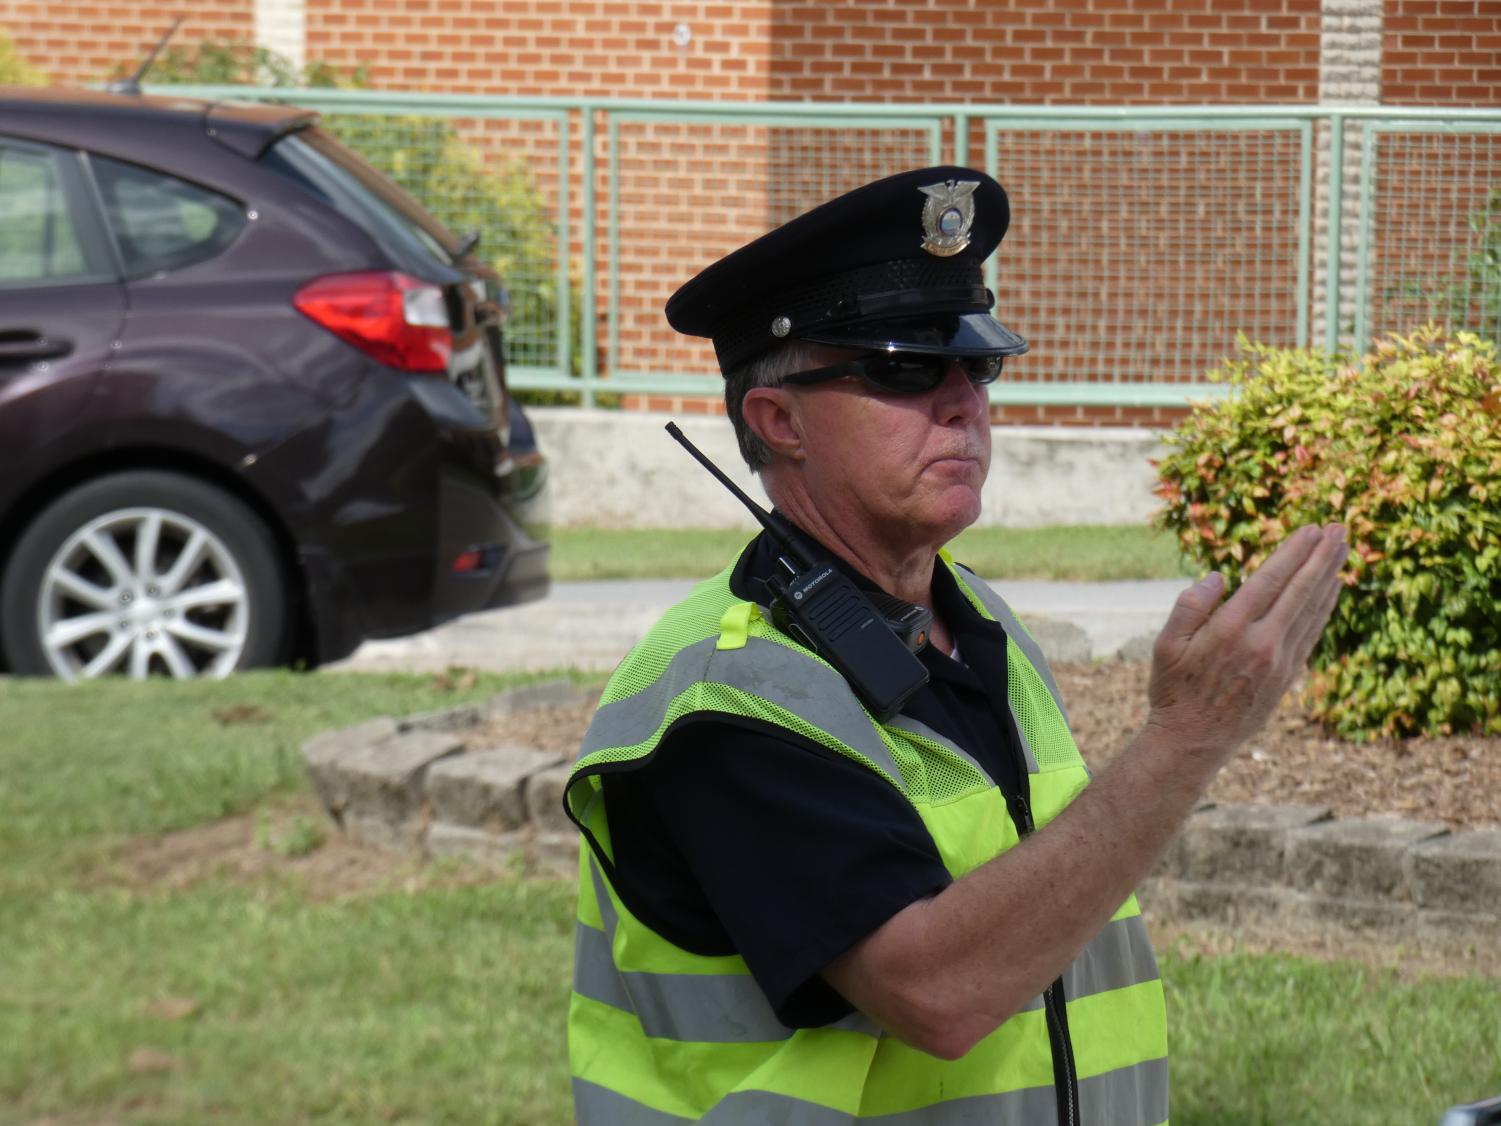 SAFETY FIRST. Student Resource Officer Mike Campbell directs traffic before school starts. The SRO position is one of several ways the school system works to keep students safe.